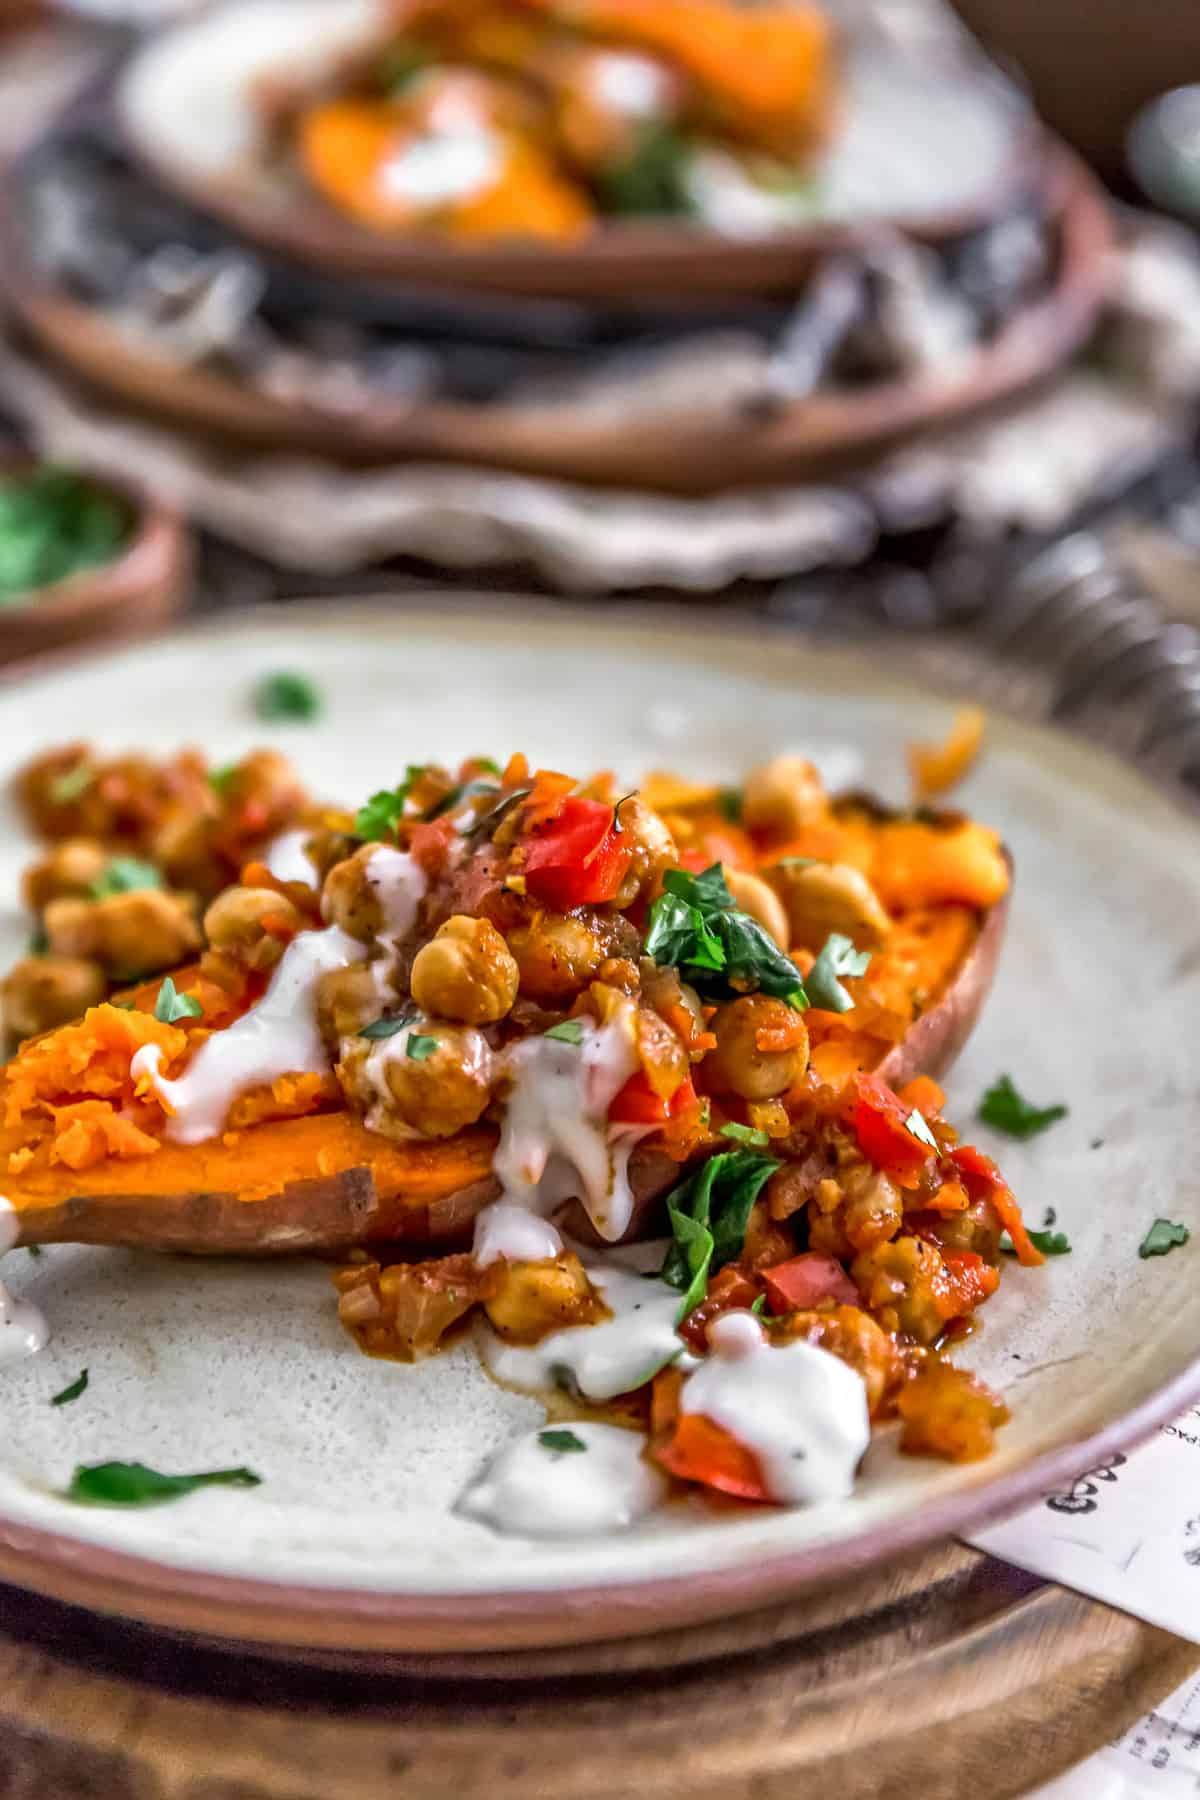 Plated Moroccan Spiced Chickpeas and Garlic Sauce over a sweet potato